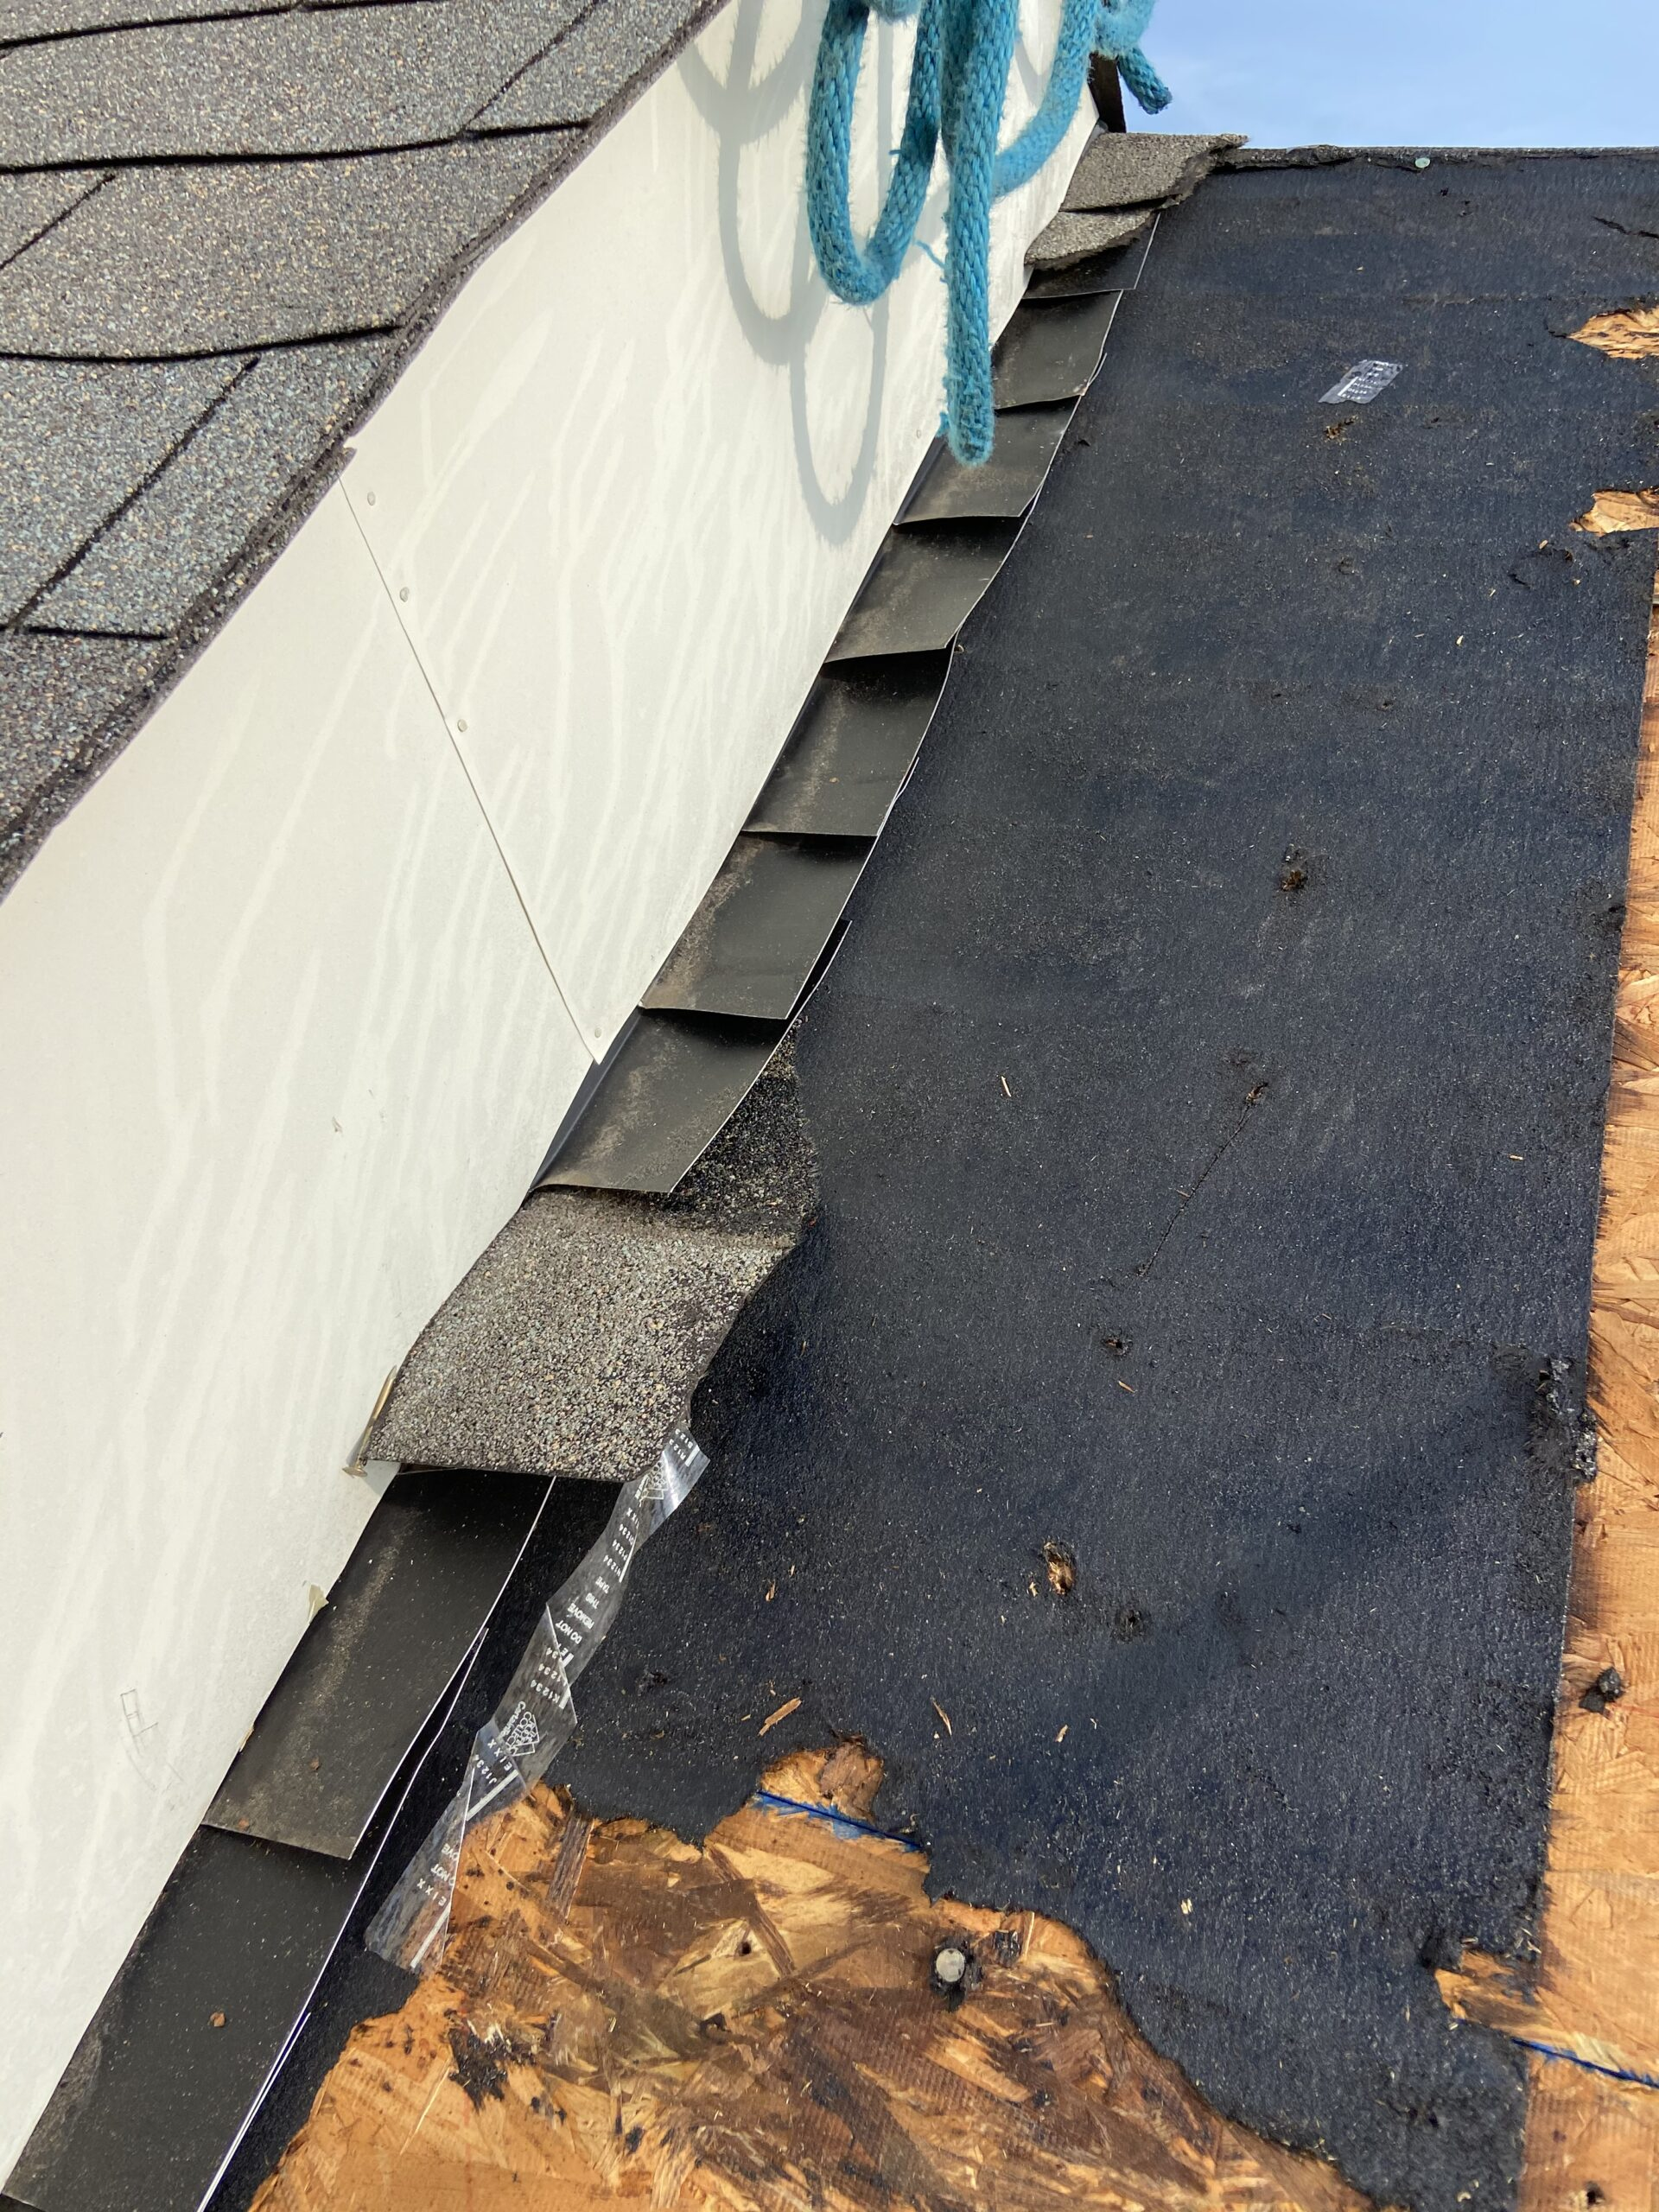 Here's another picture of some flashing that we are going to use to keep this roof from leaking